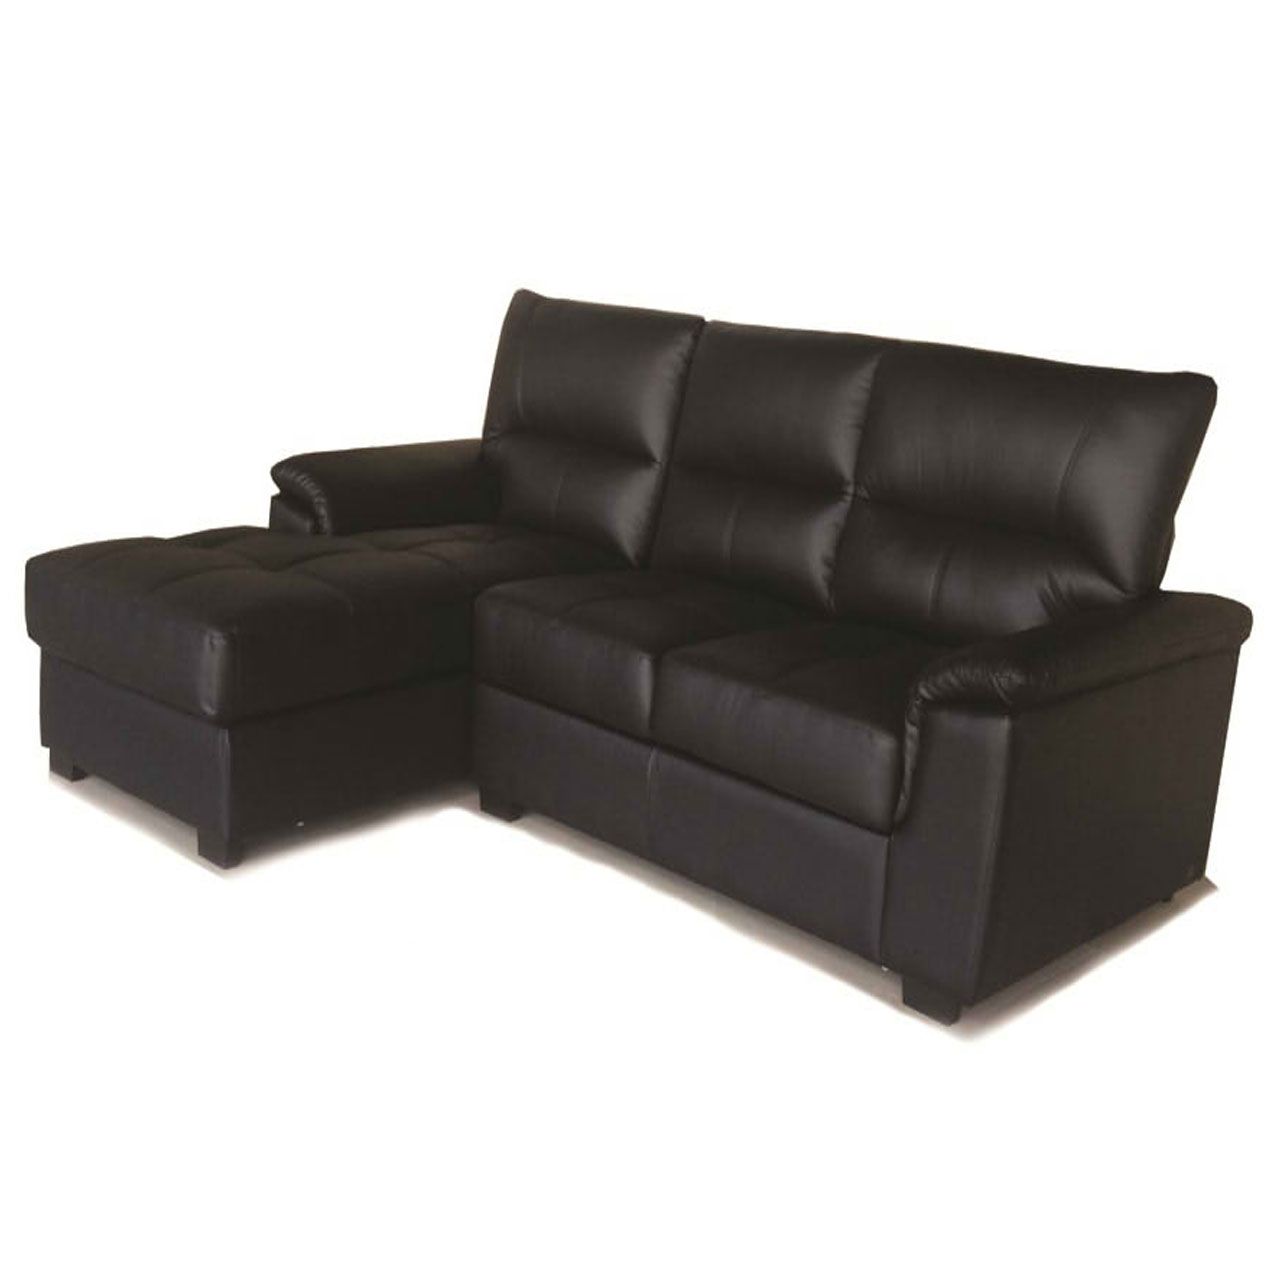 sofa set price in philippines full set of sofa for